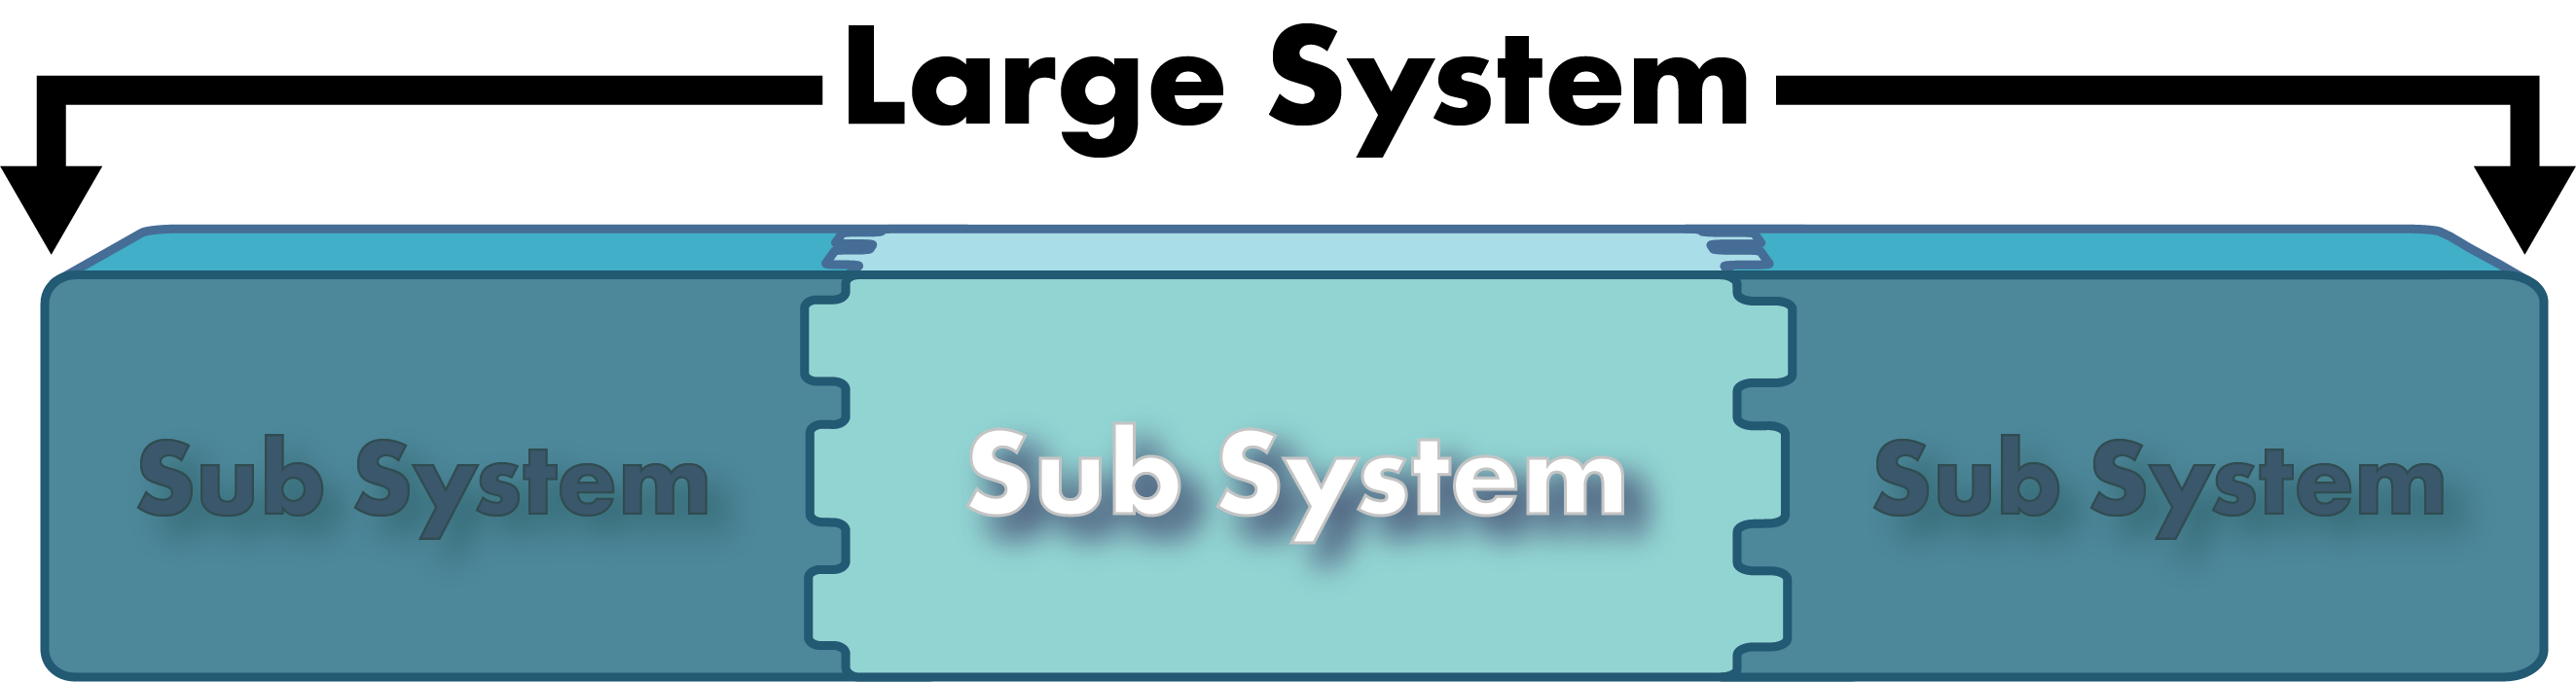 large system with sub systems